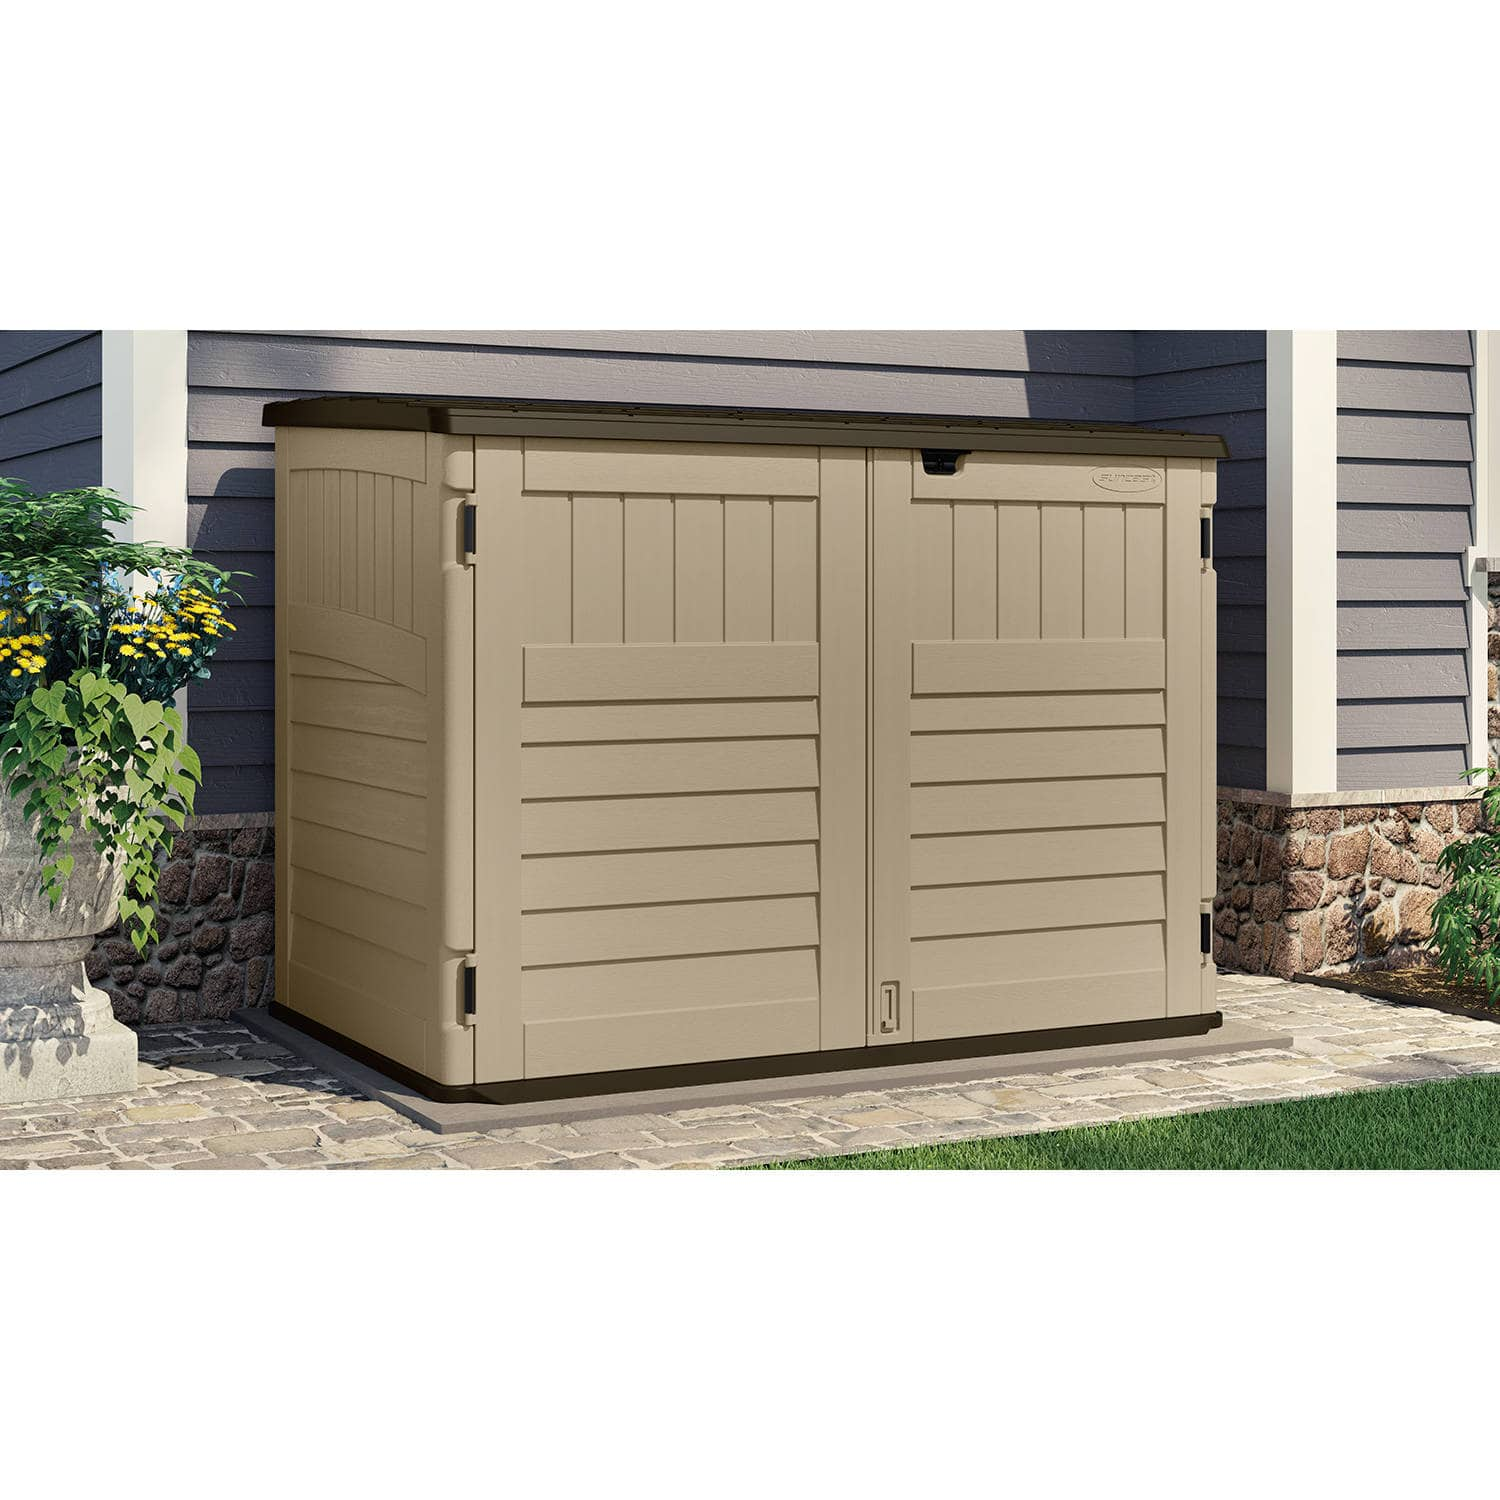 Suncast Toter Trash Can Shed Sand 70 Cu Ft 188 75 Free In Pickup